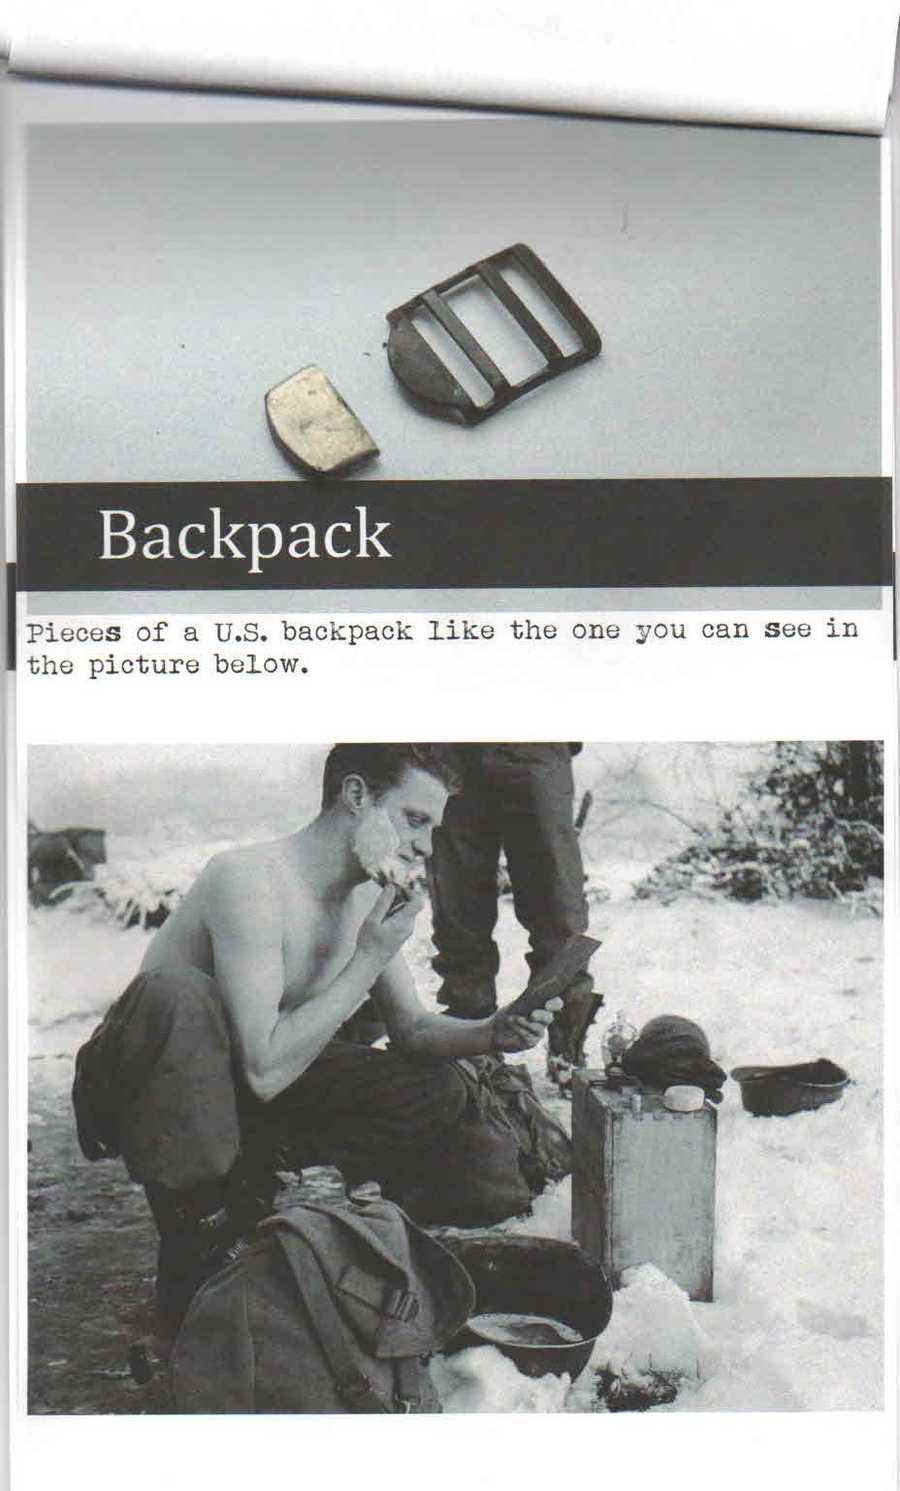 The top photo is of pieces of a U.S. backpack like the one pictured in the photo below it.